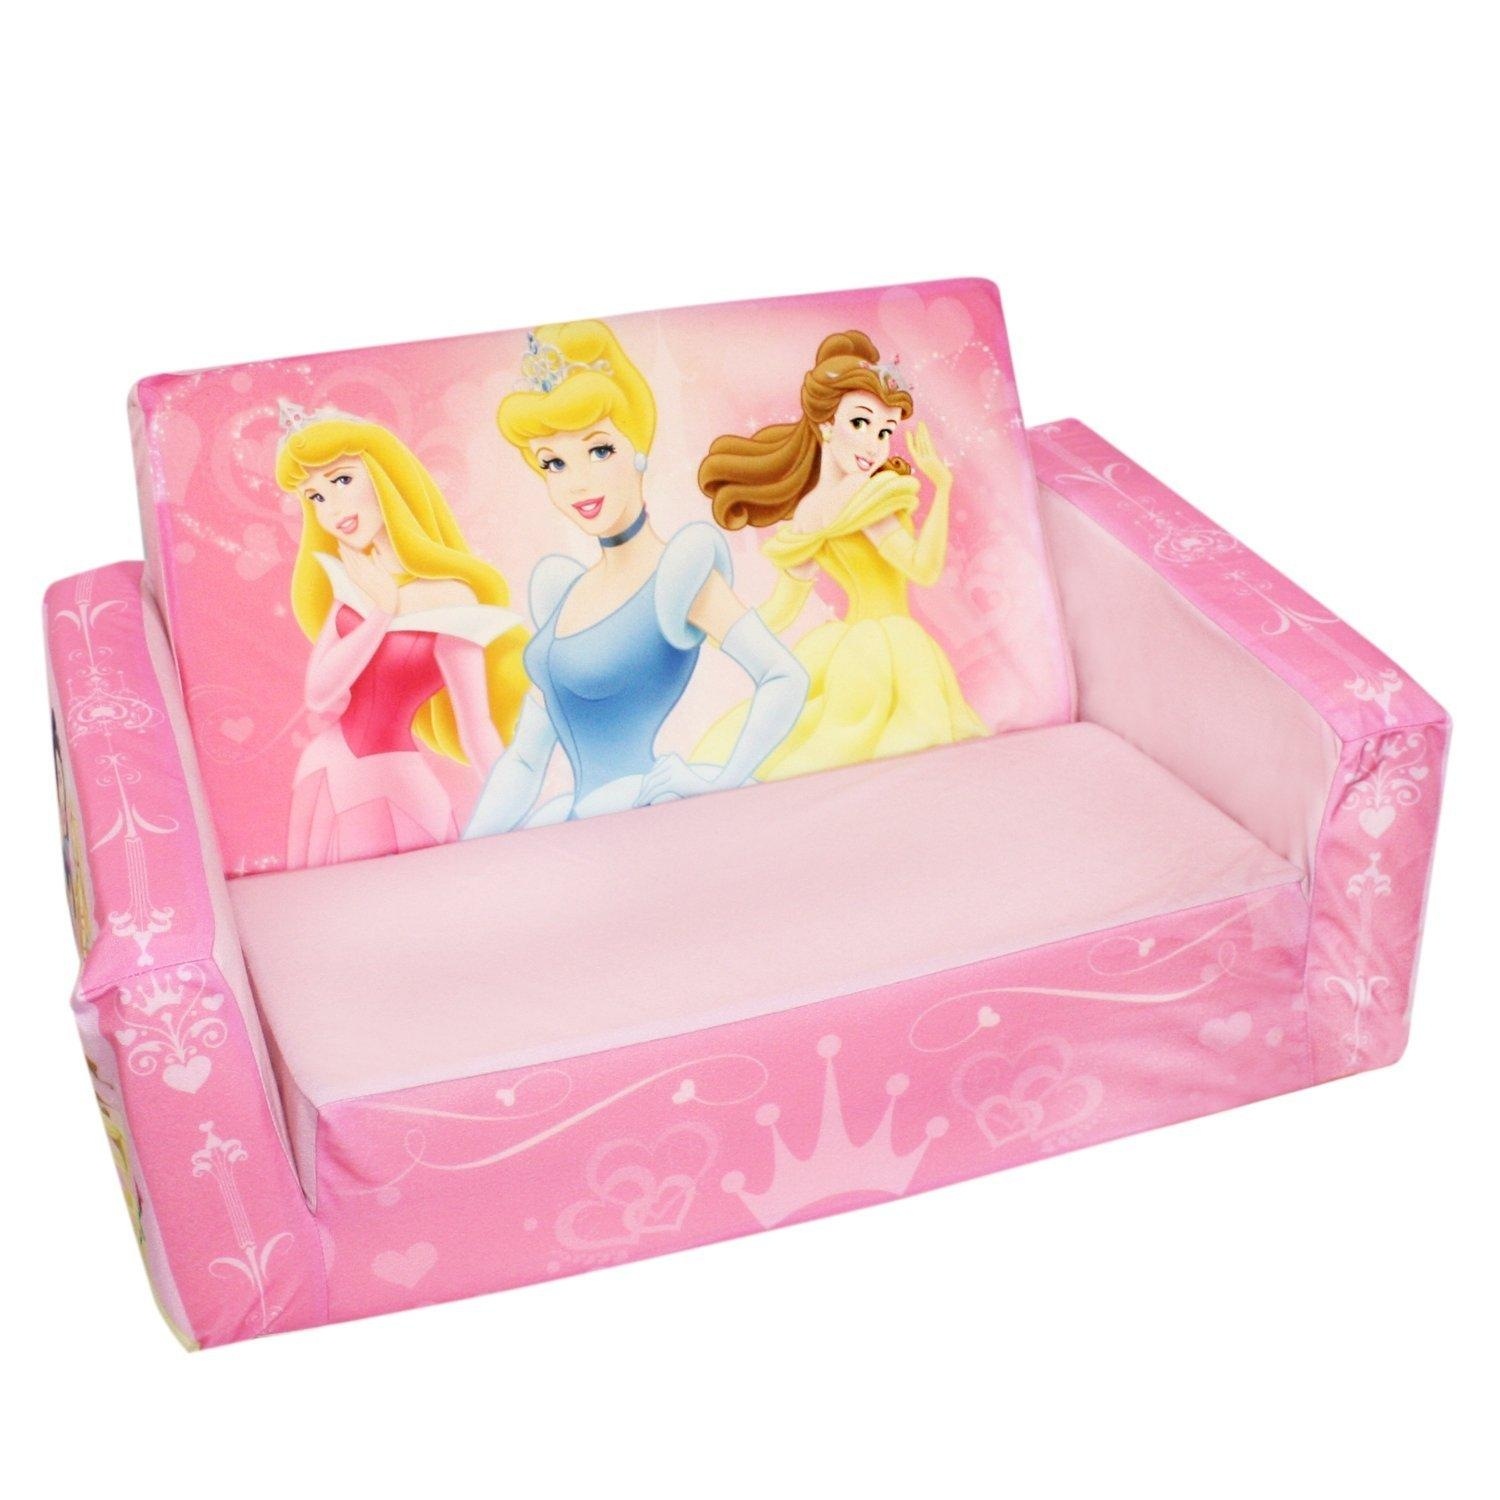 Disney Princess Fold Out Couch — Readingworks Furniture : Fold Out Regarding Disney Princess Couches (Image 3 of 20)